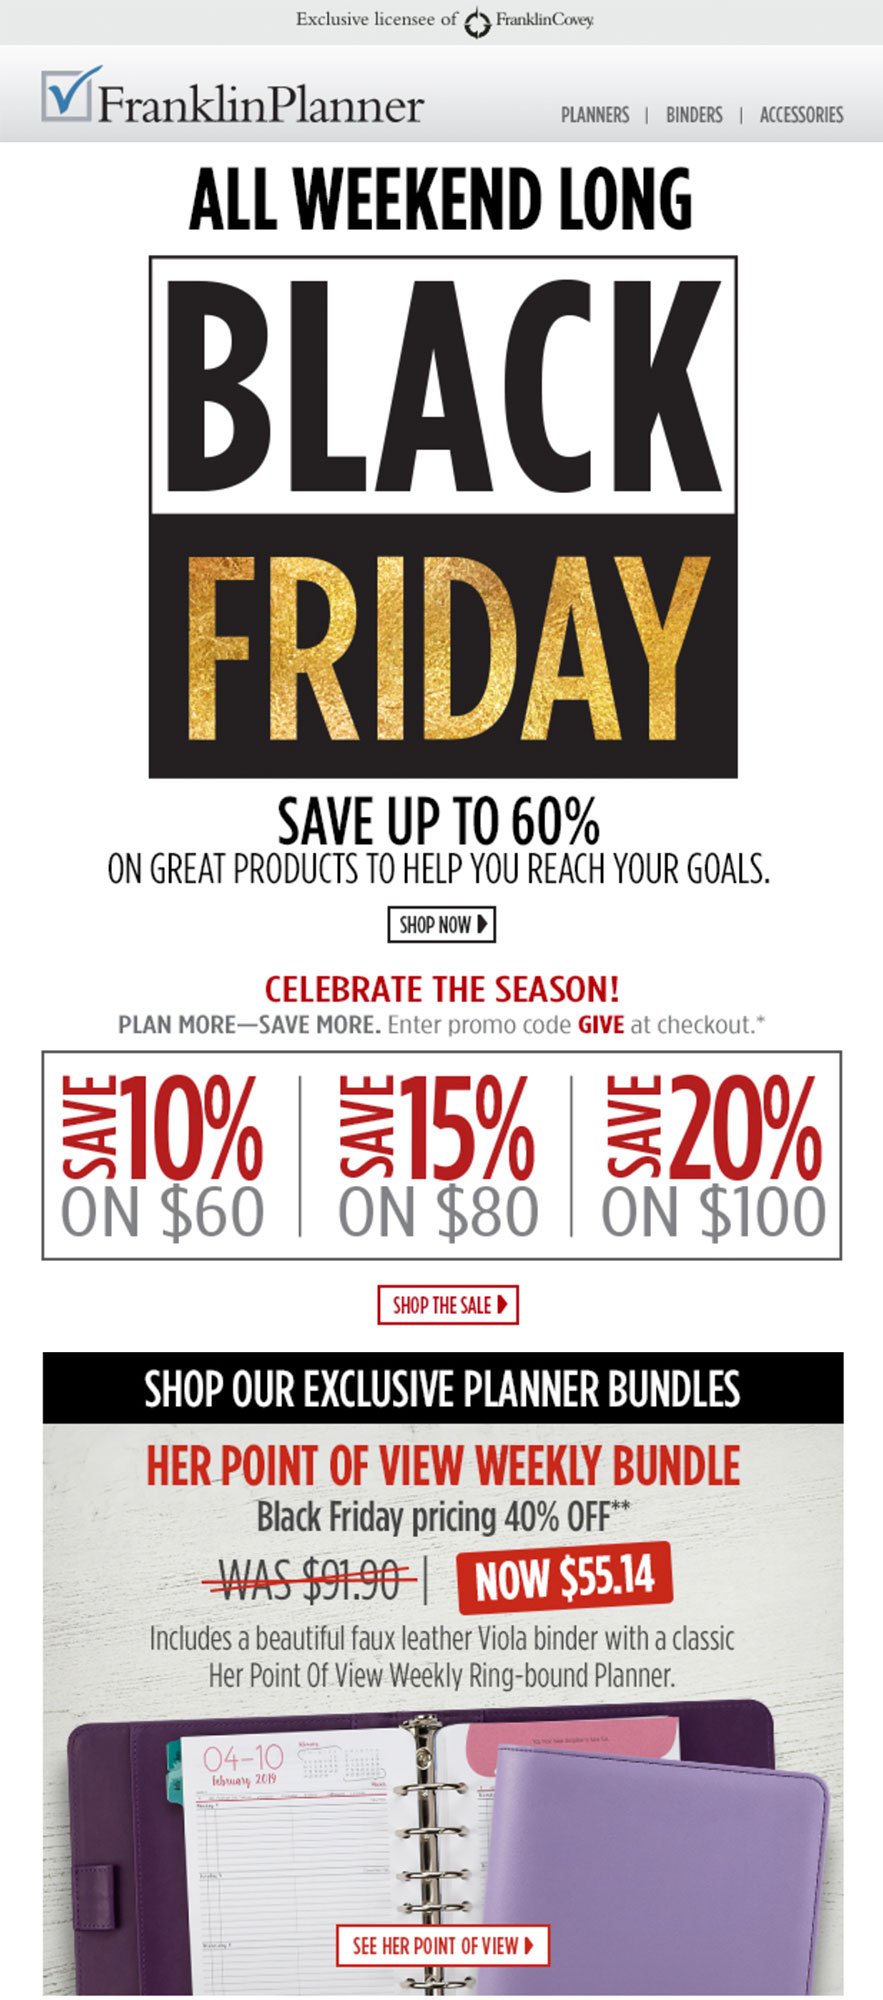 FranklinPlanner's all weekend long BFCM sale.